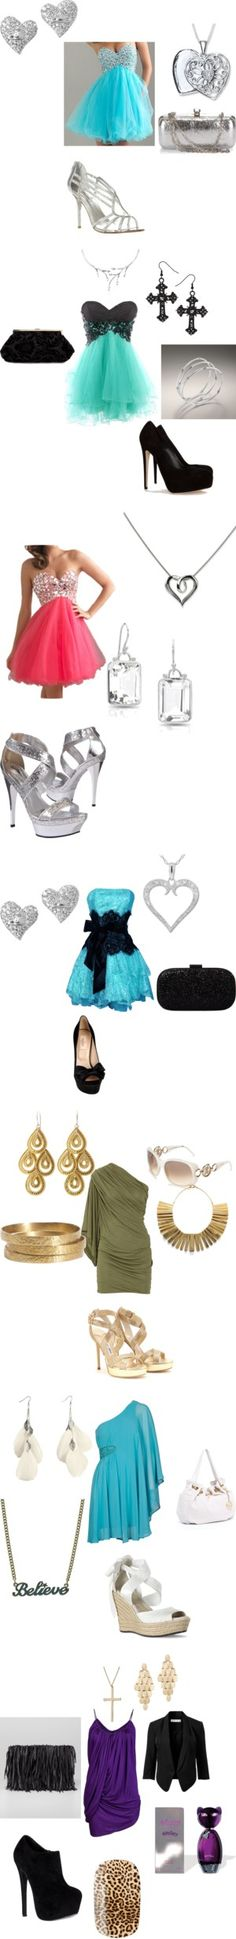 """""""Homecoming styles"""" by gabrielle-kaitlyn on Polyvore"""